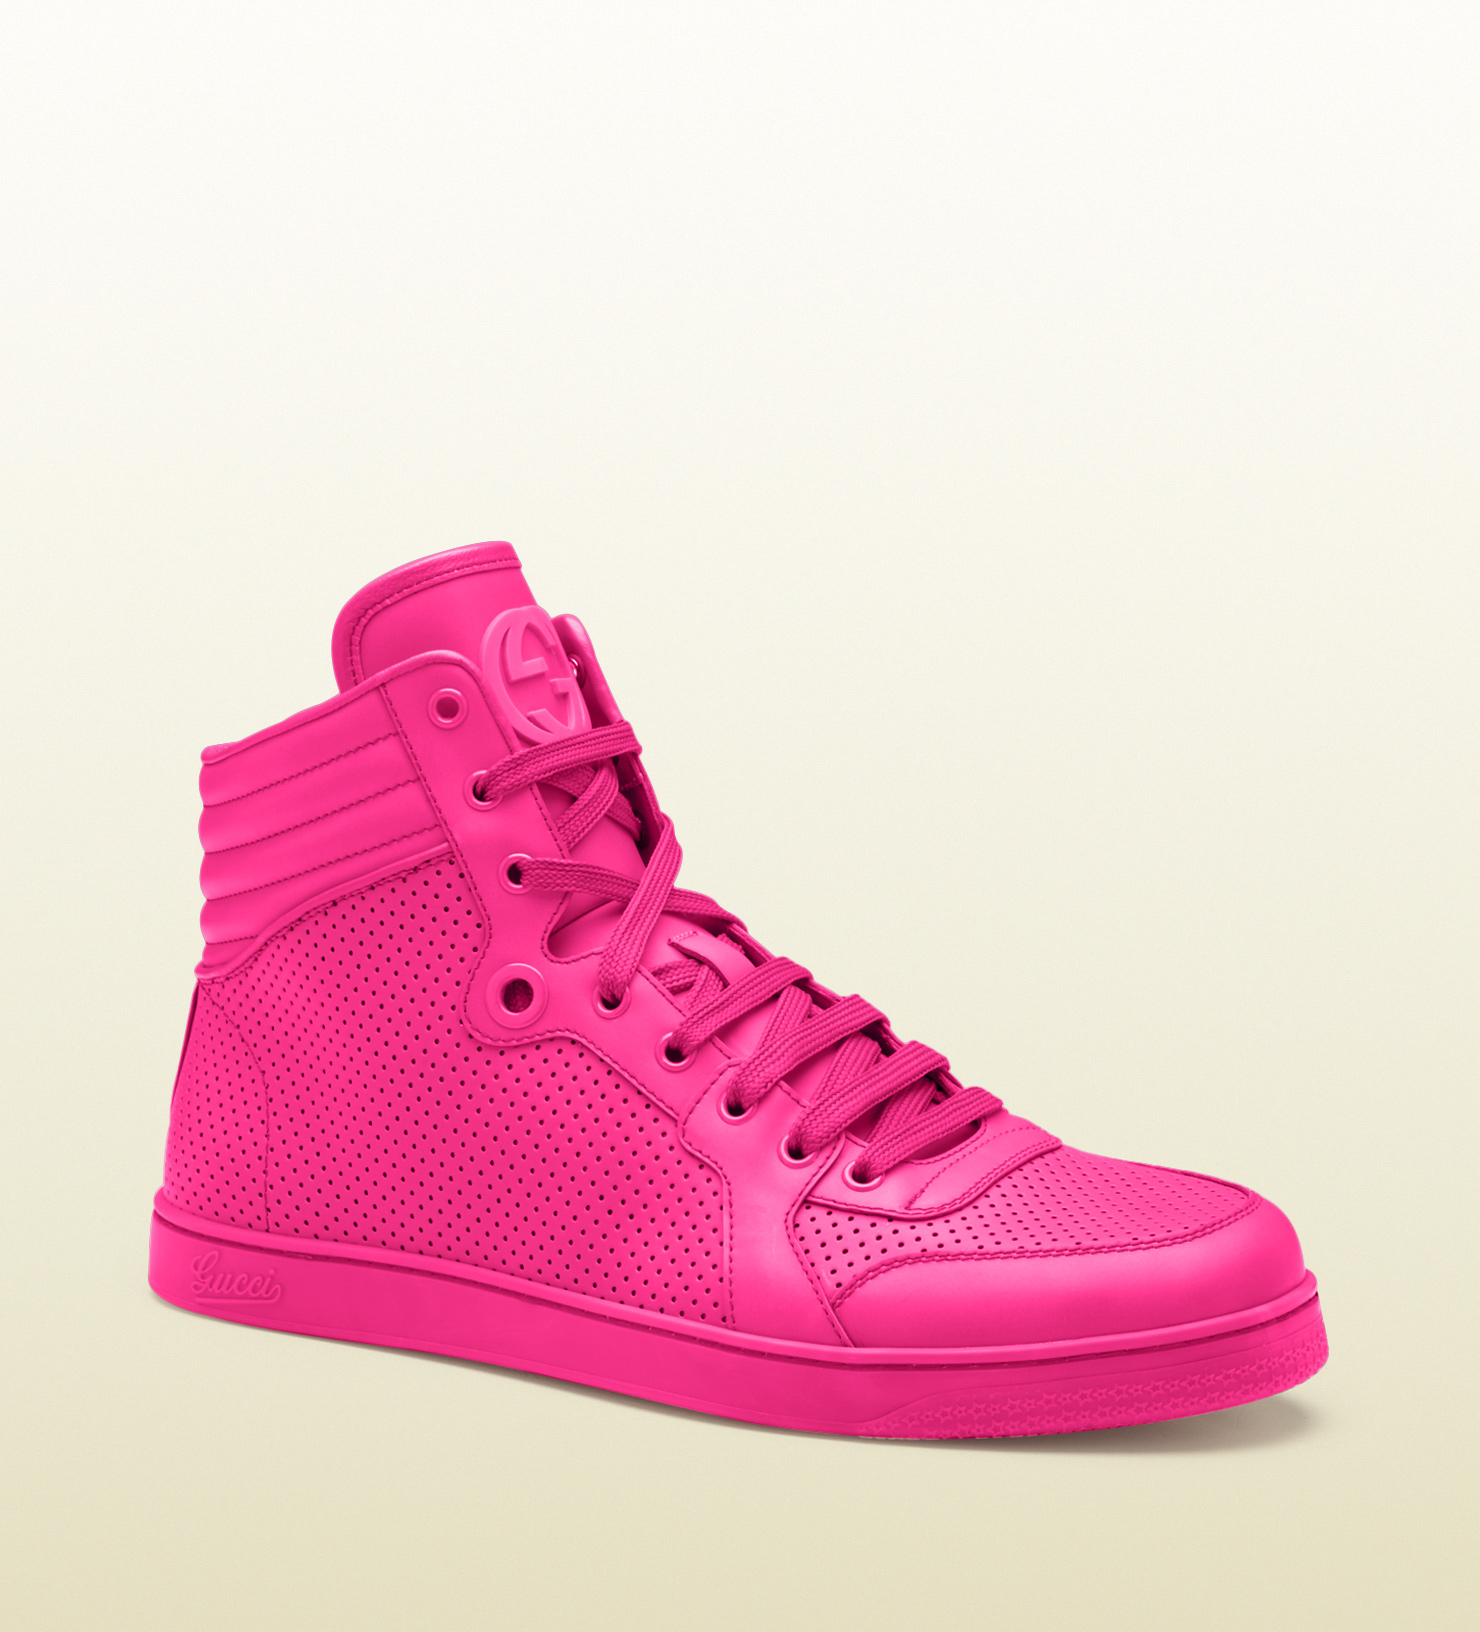 Pink Sneakers For 28 Images Gucci Hightop Neon Leather Sneakers In Pink Lyst Amazing Pink